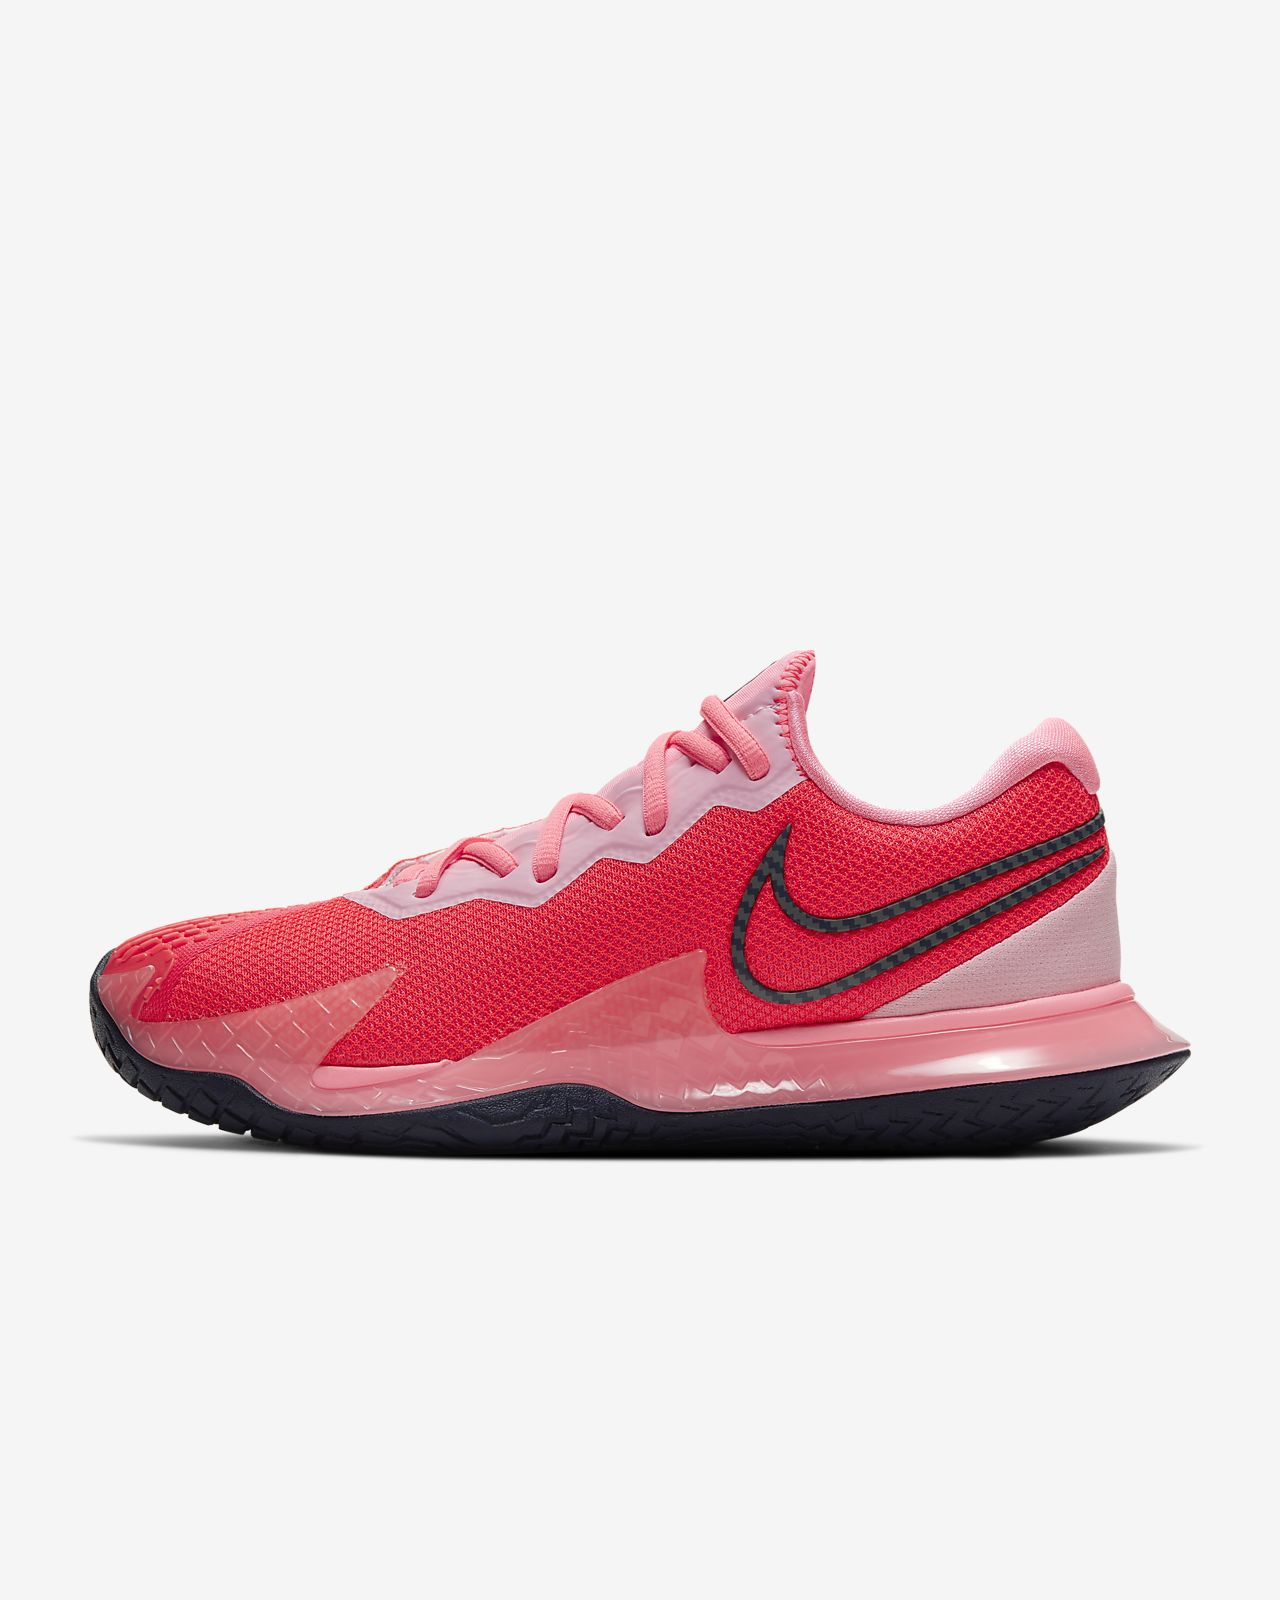 NikeCourt Air Zoom Vapor Cage 4 女款硬地球場網球鞋